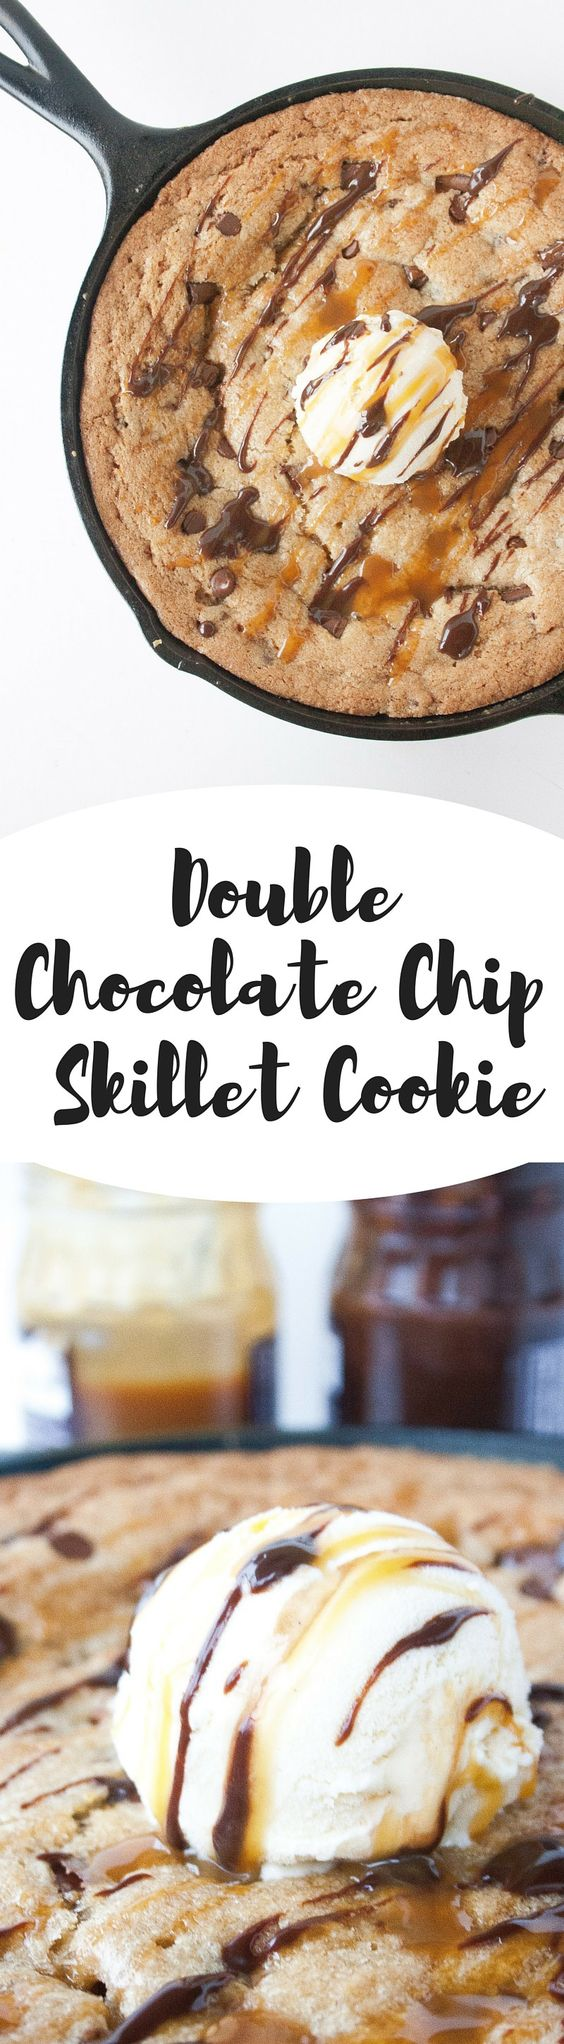 Double Chocolate Chip Skillet Cookie. A giant skillet cookie filled ...